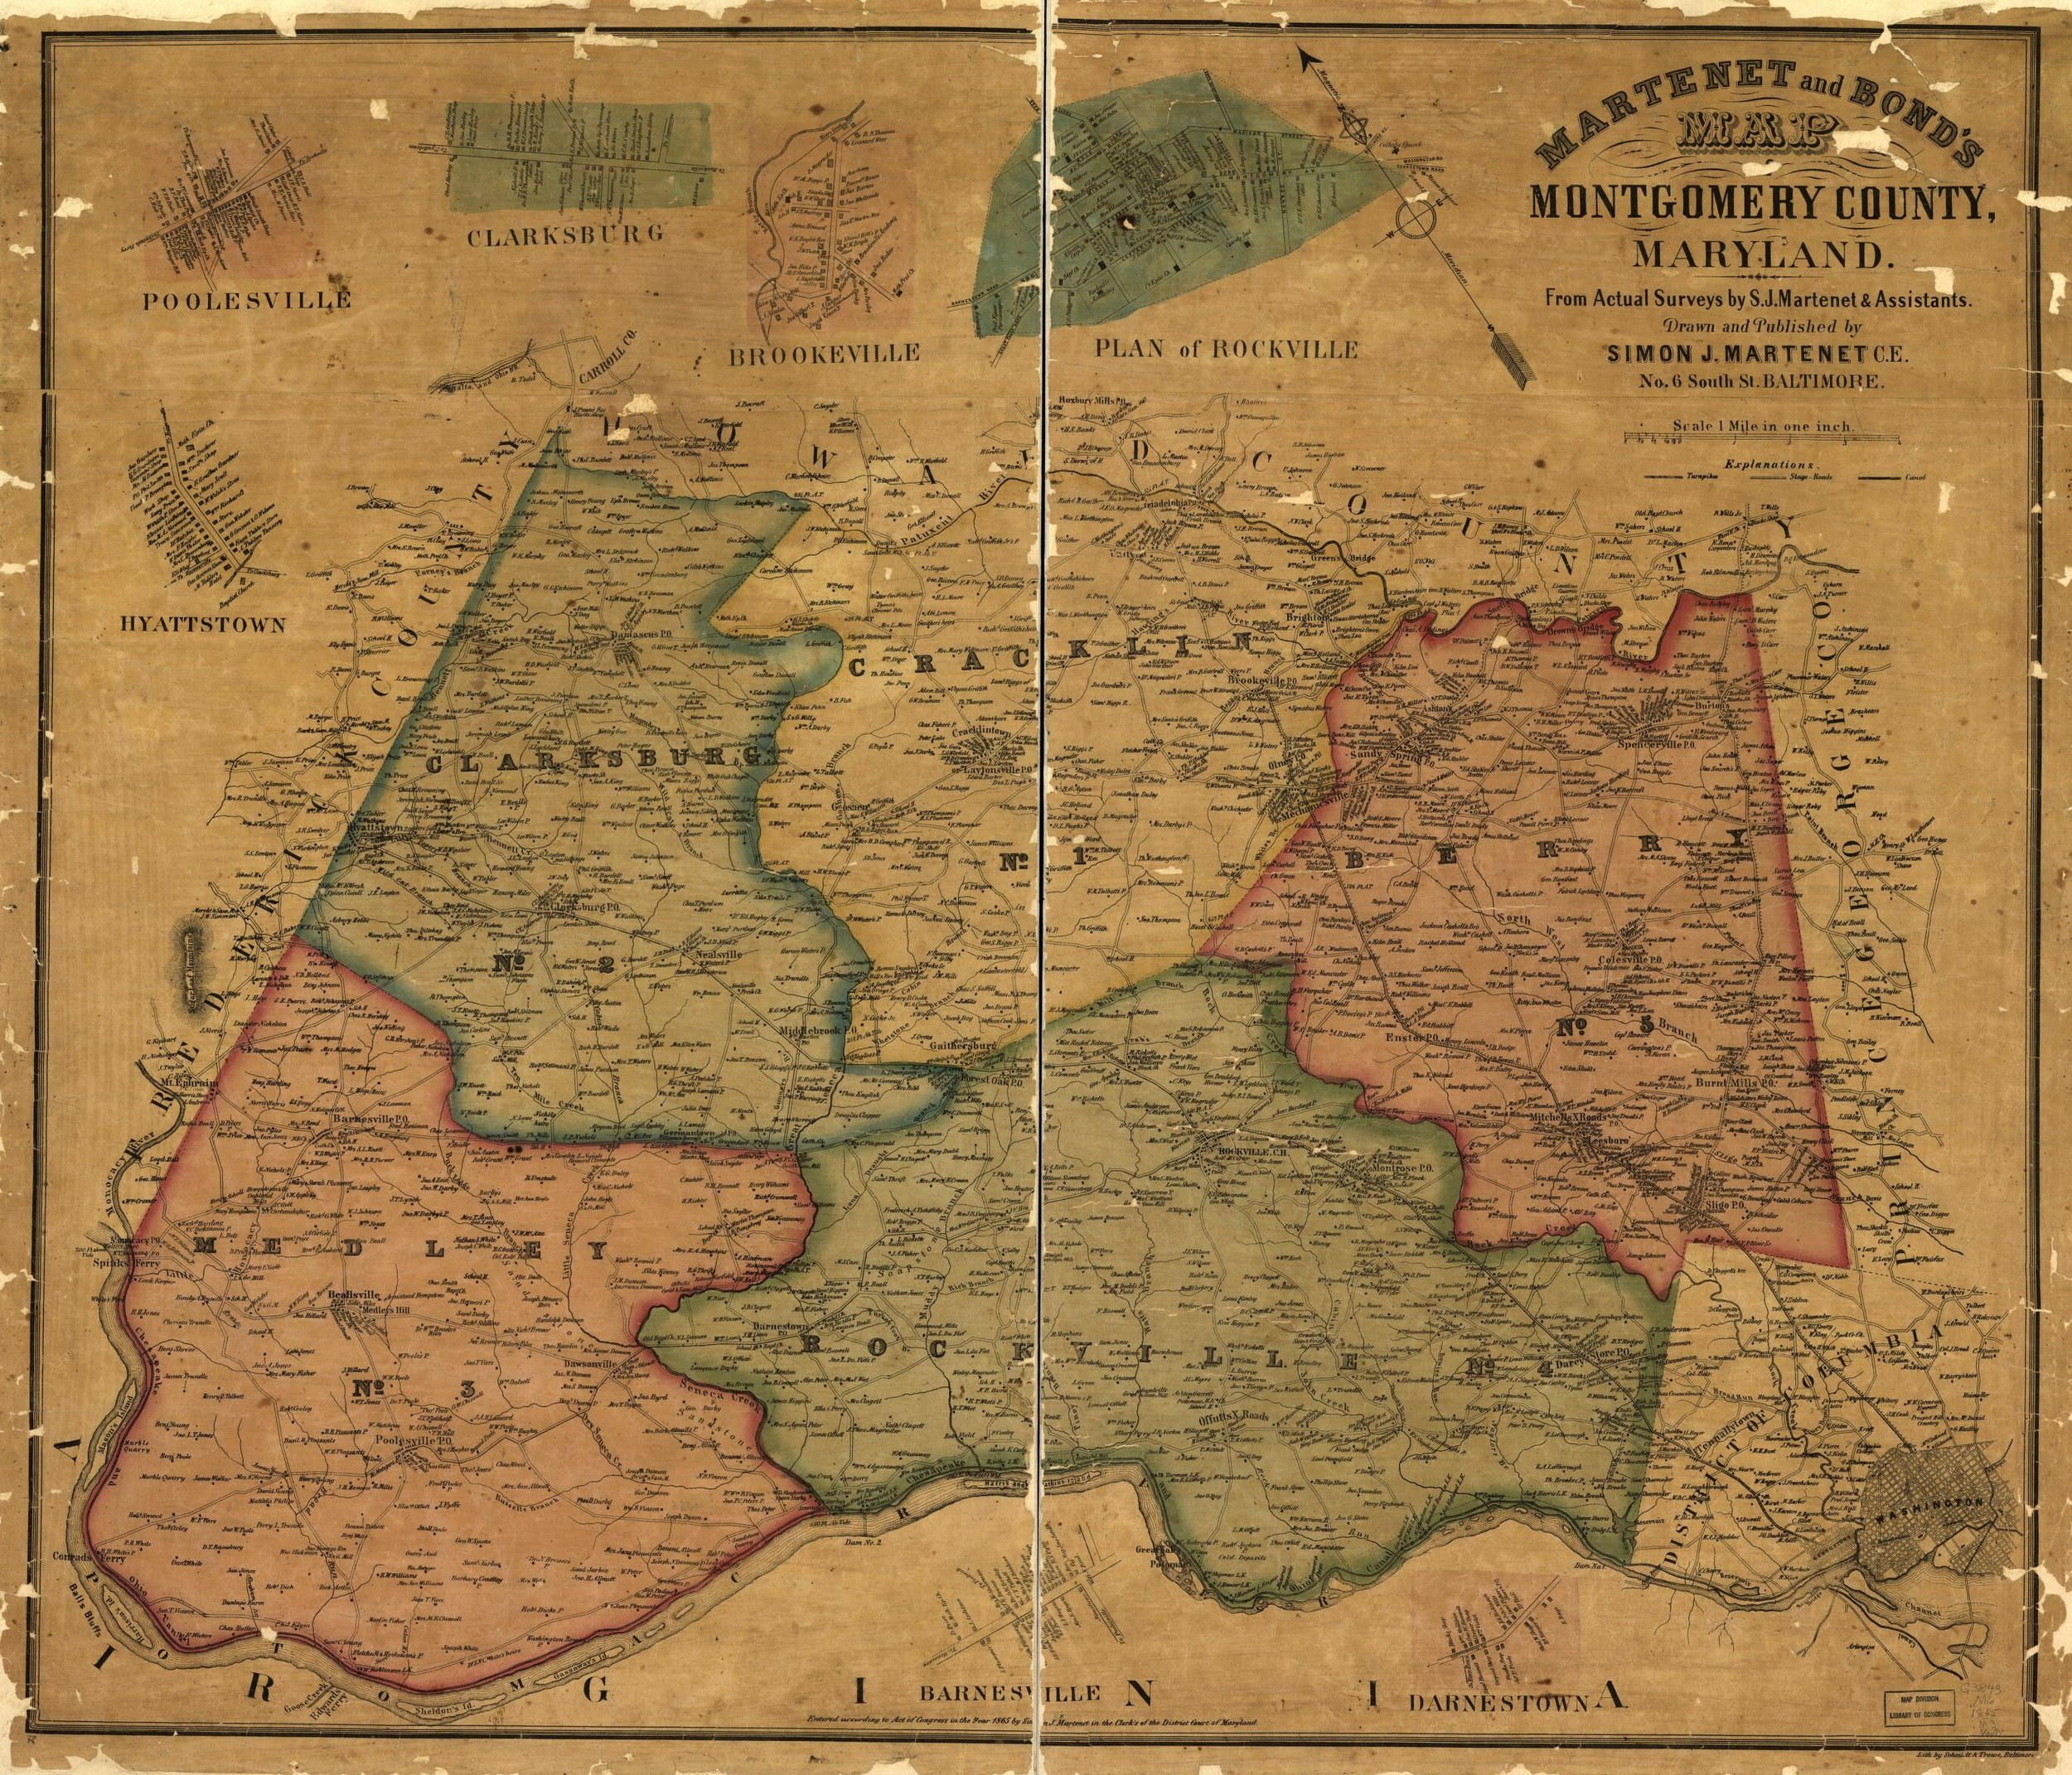 1865 Martenet and Bond Map of Montgomery County [MB].